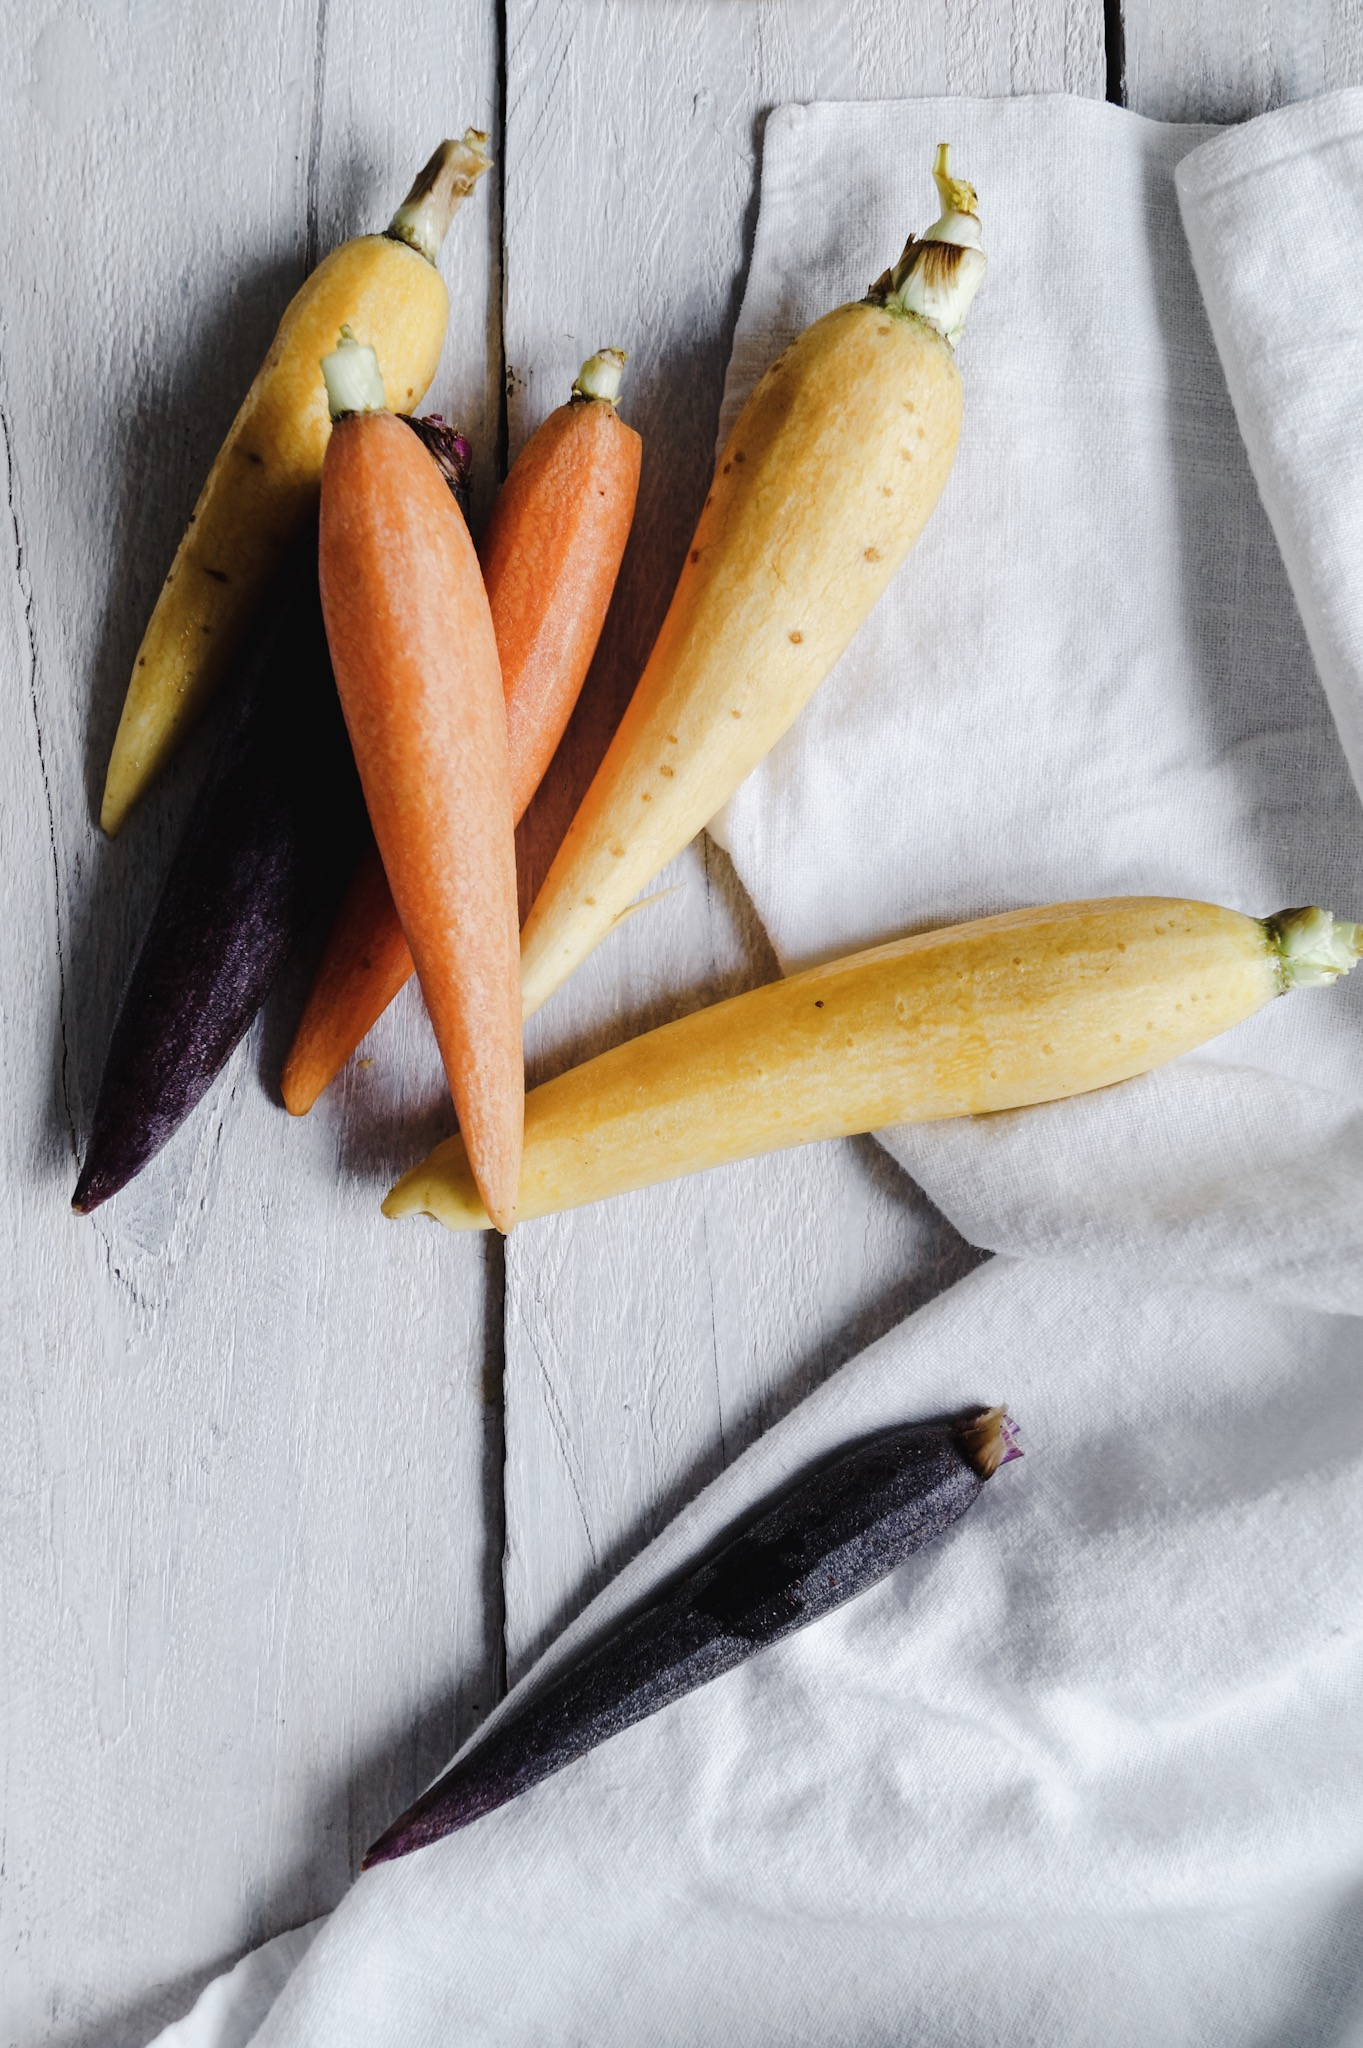 Colorful carrots in minimal light and bright food photography and styling with some ideas for a spring veggie tray.